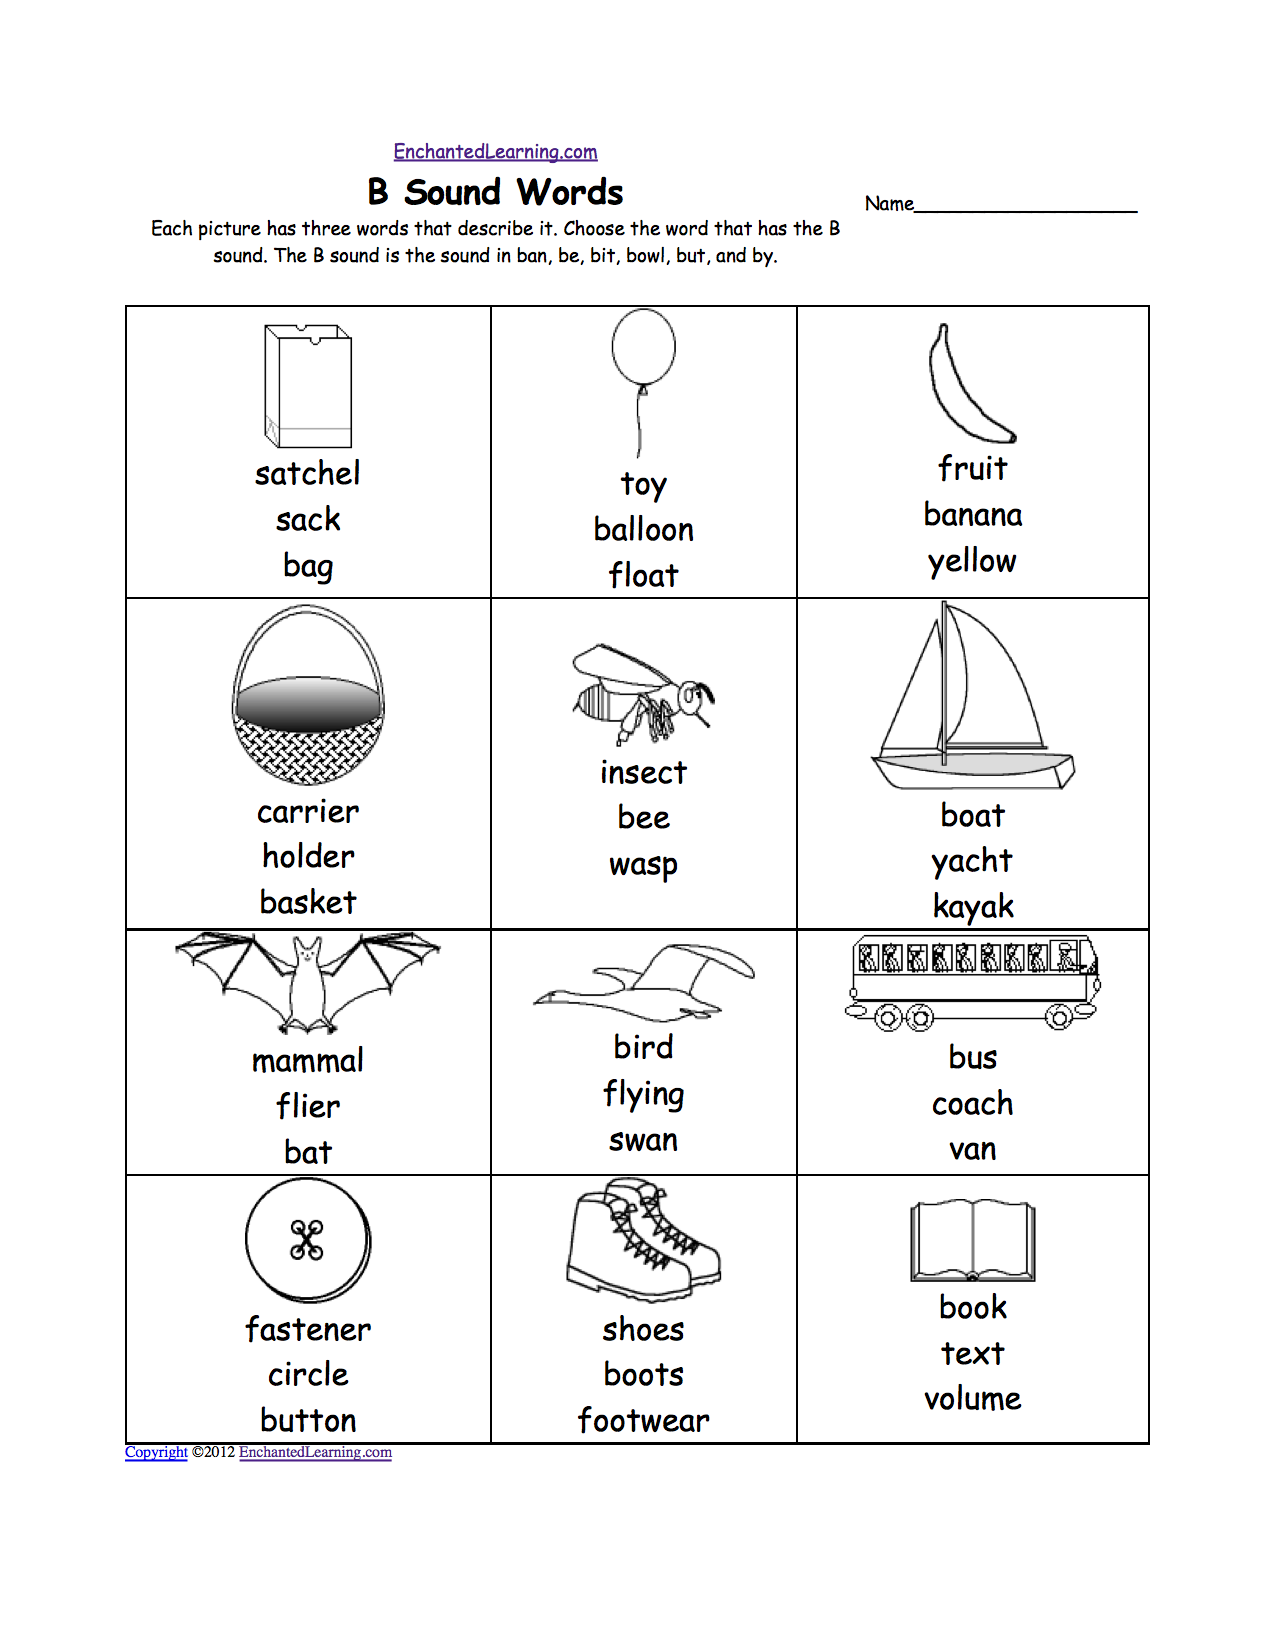 Aldiablosus  Nice Phonics Worksheets Multiple Choice Worksheets To Print  With Foxy Quotbquot Sound Phonics Worksheet Multiple Choice Each Picture Has Three Words That Describe It Choose The Word That Has A Quotbquot Sound The Quotbquot Sound Is The Sound  With Beautiful Proofreading And Editing Worksheets Also Linking Verbs Worksheet Th Grade In Addition Newtons Laws Worksheets And Zoo Field Trip Worksheet As Well As Multiplication Repeated Addition Worksheets Additionally Comparing Adjectives Worksheets From Enchantedlearningcom With Aldiablosus  Foxy Phonics Worksheets Multiple Choice Worksheets To Print  With Beautiful Quotbquot Sound Phonics Worksheet Multiple Choice Each Picture Has Three Words That Describe It Choose The Word That Has A Quotbquot Sound The Quotbquot Sound Is The Sound  And Nice Proofreading And Editing Worksheets Also Linking Verbs Worksheet Th Grade In Addition Newtons Laws Worksheets From Enchantedlearningcom